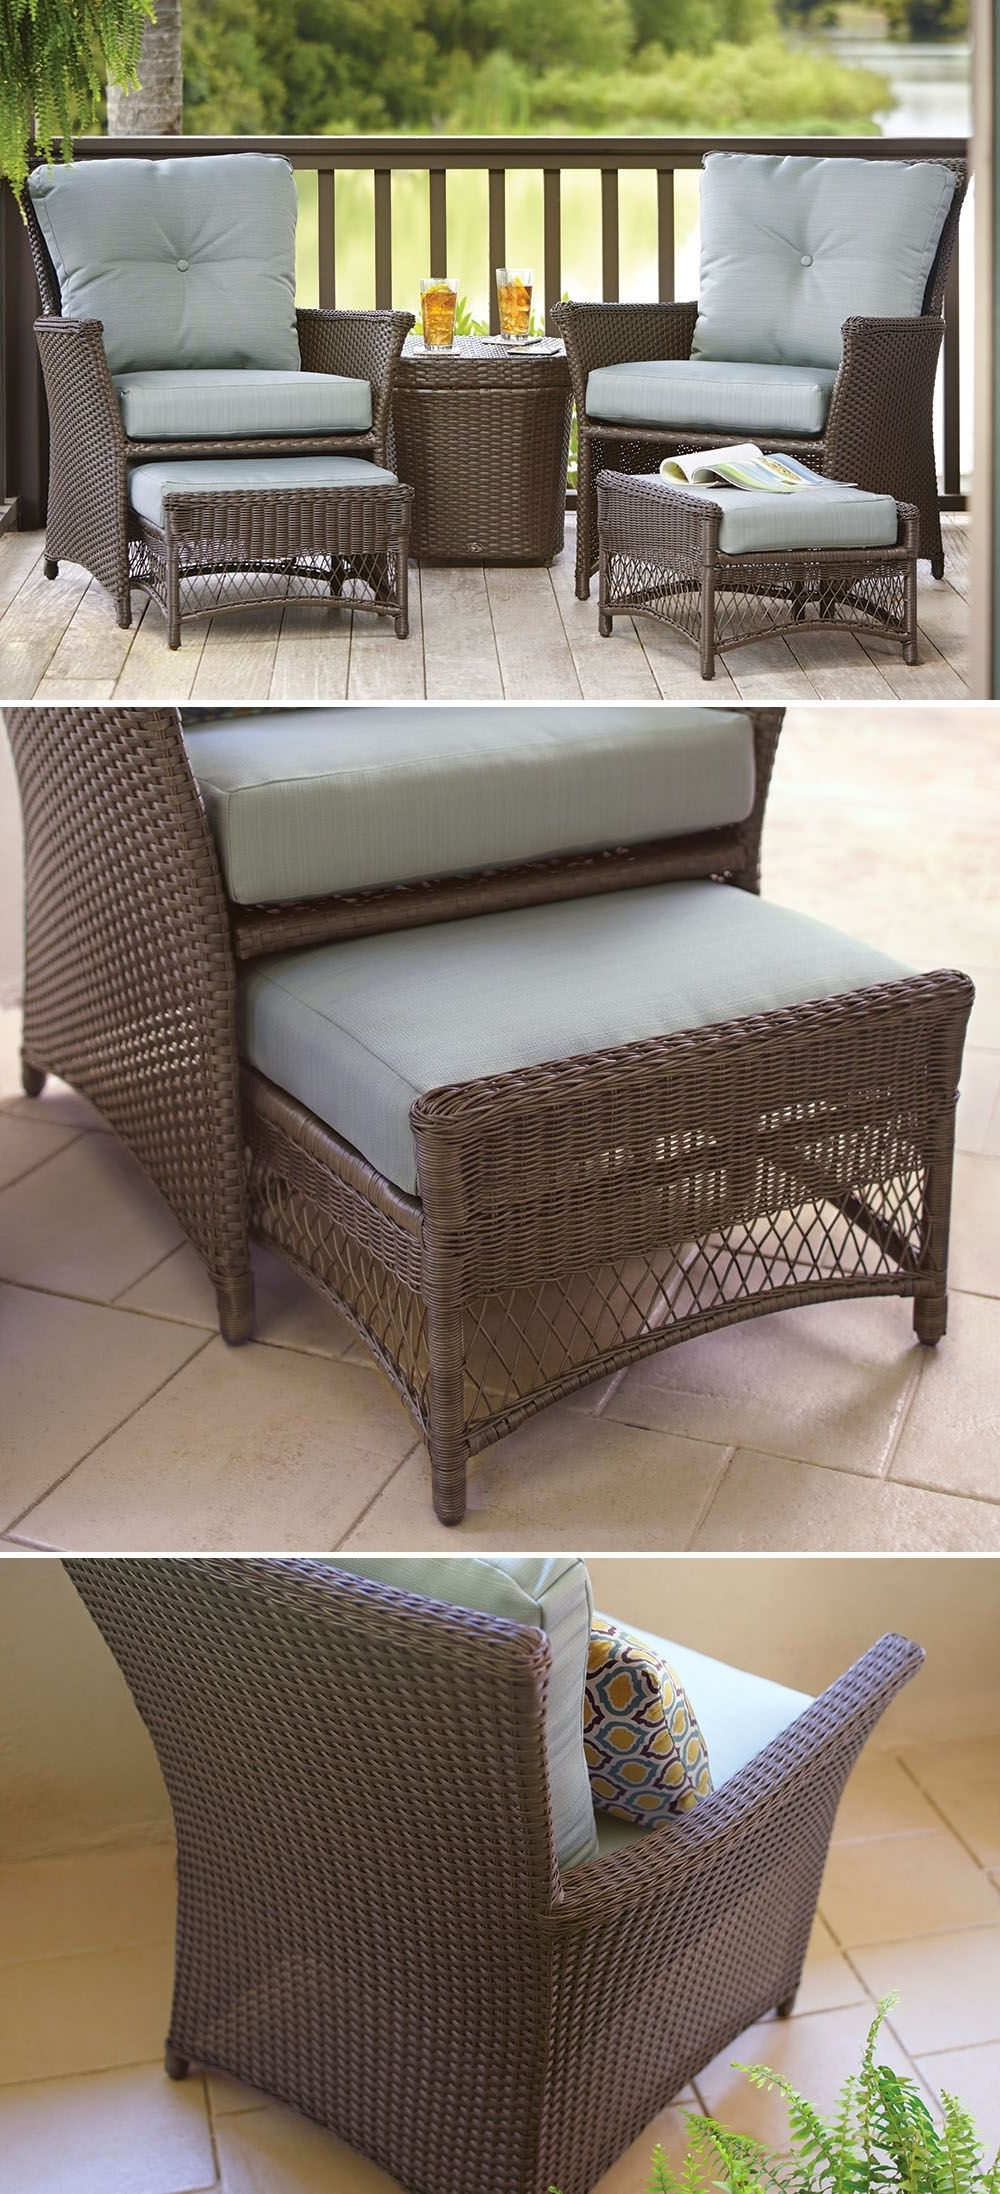 Patio Umbrellas For Small Spaces Pertaining To Fashionable This Affordable Patio Set Is Just The Right Size For Your Small (View 13 of 20)